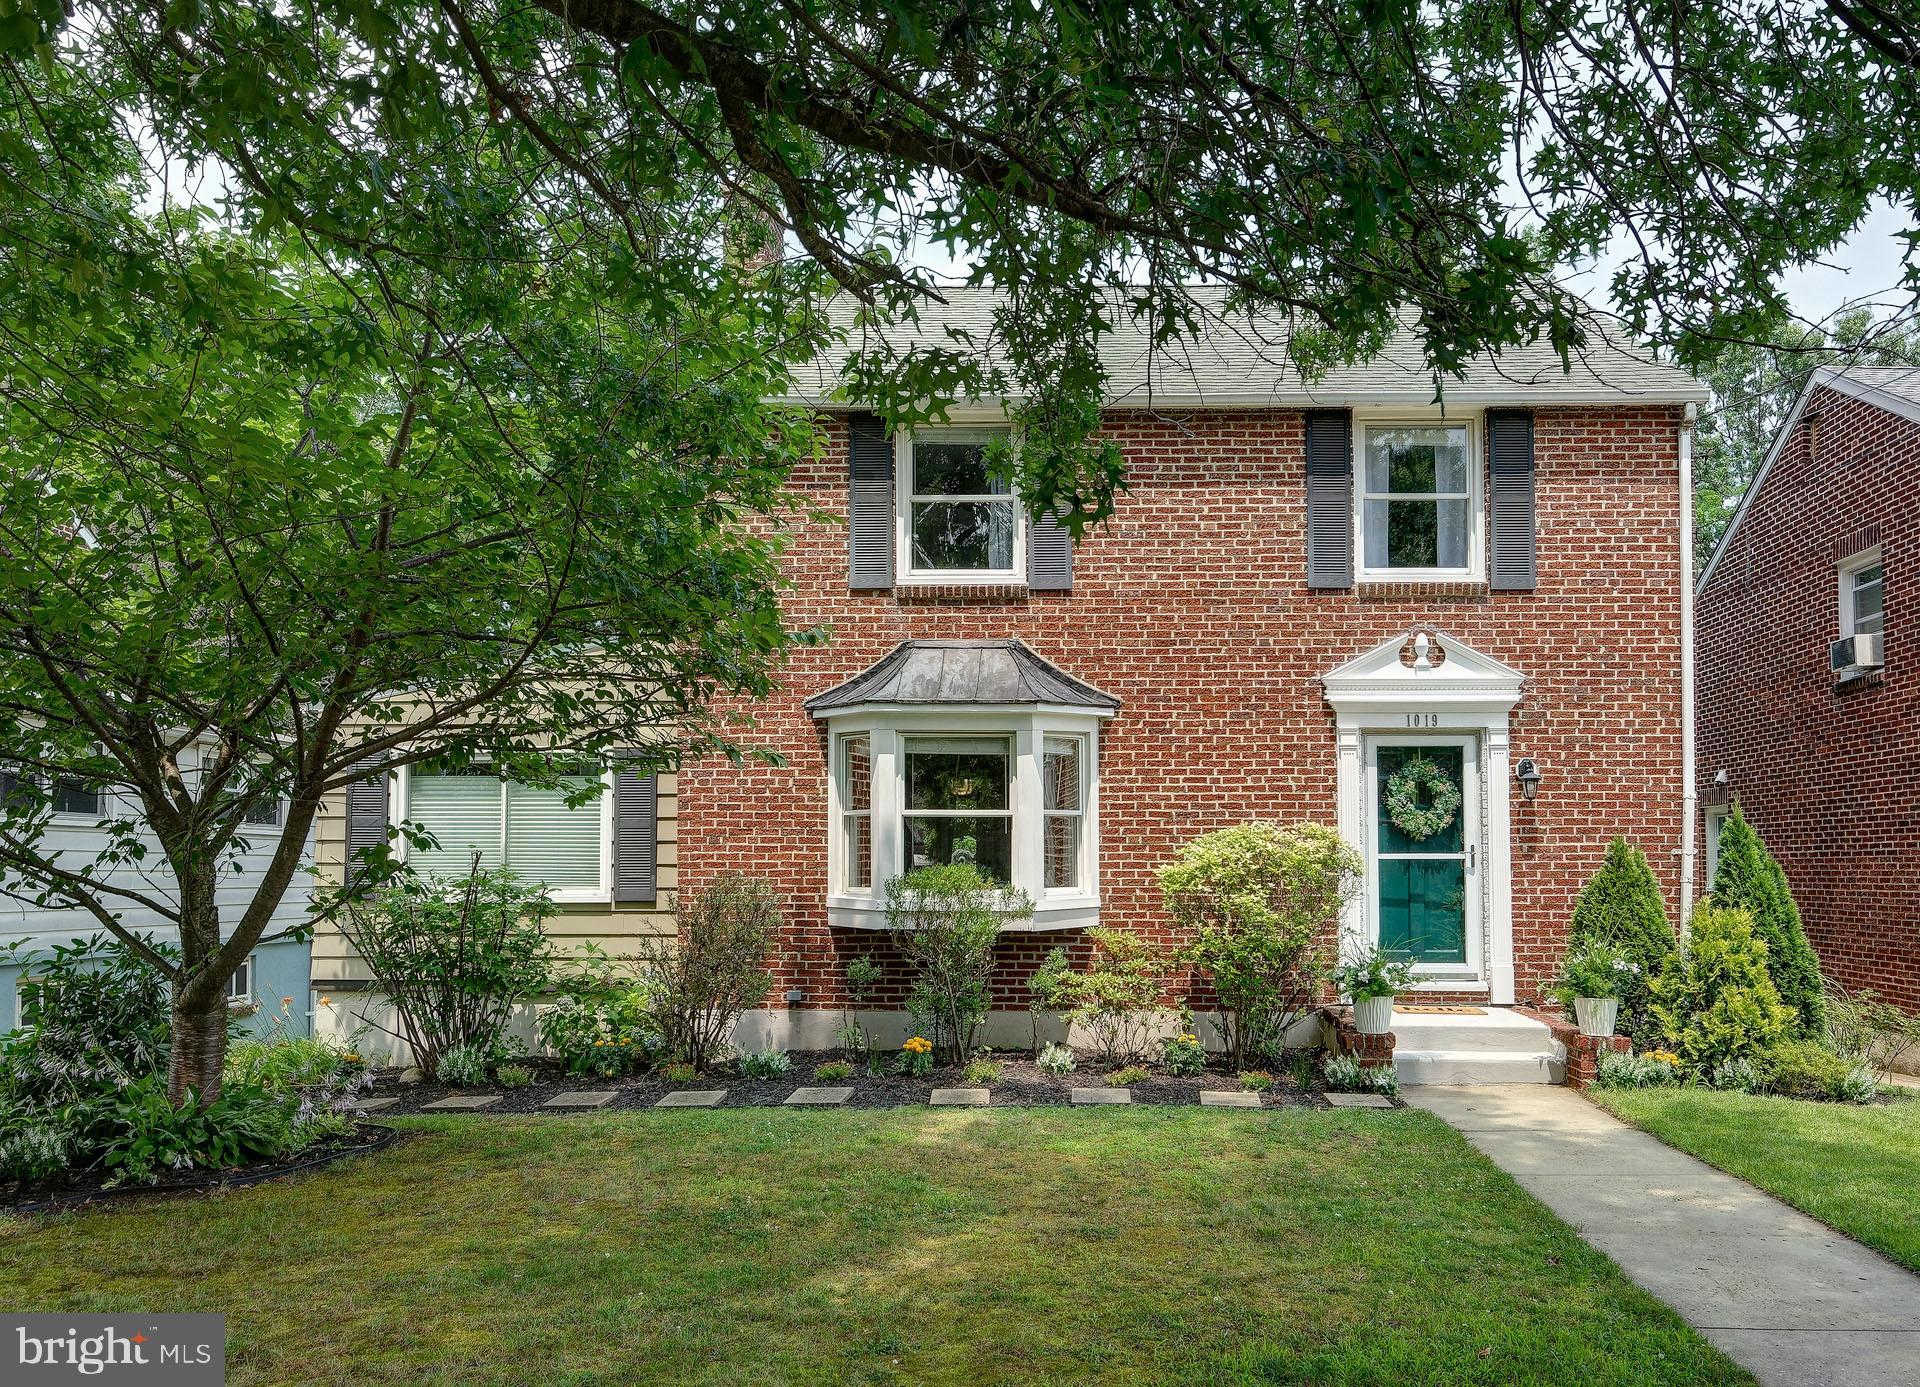 1019 Emerald Avenue, Haddon Township, NJ 08107 has an Open House on  Sunday, July 28, 2019 1:00 PM to 3:00 PM